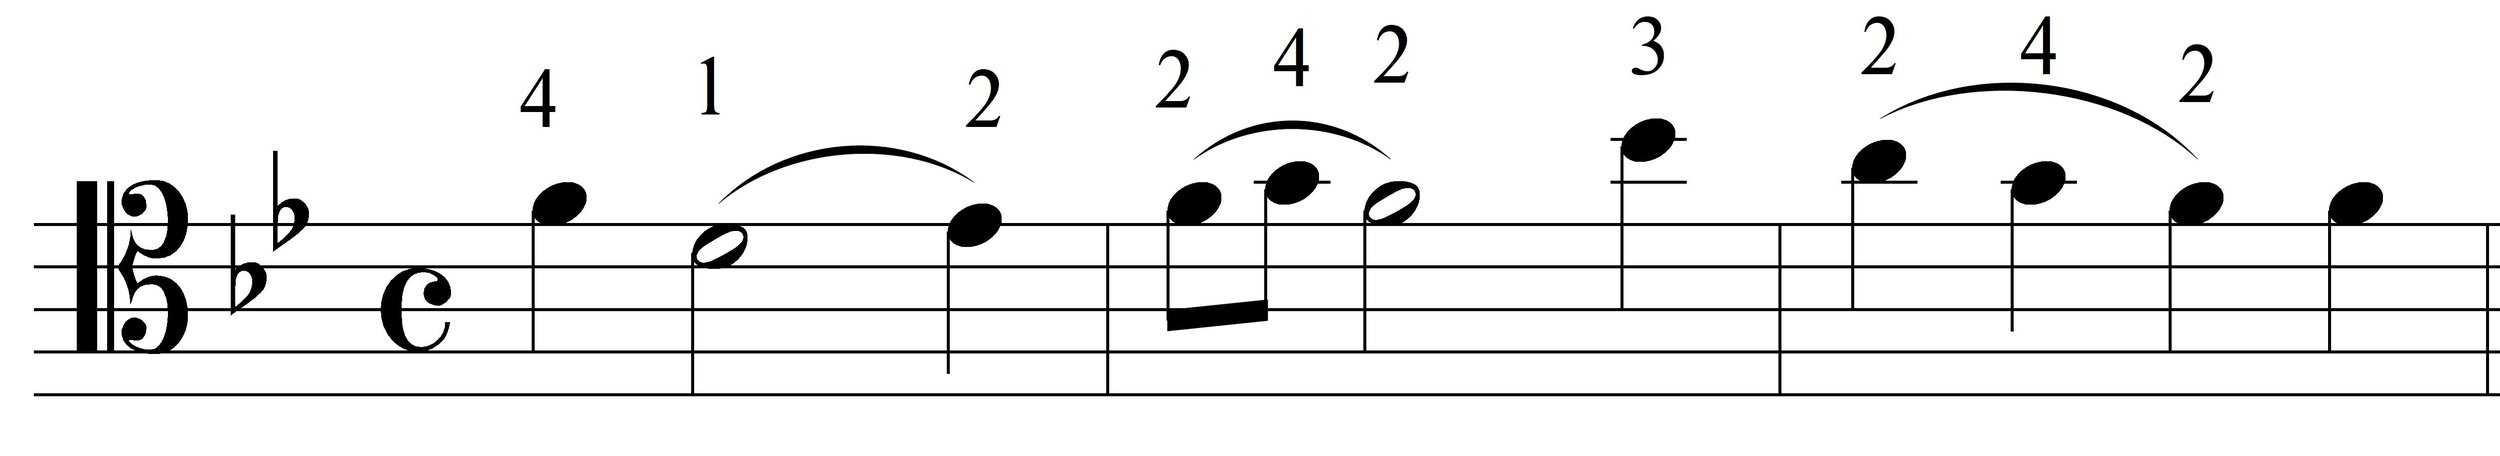 (m. 30 features a shift up to a high B-flat)